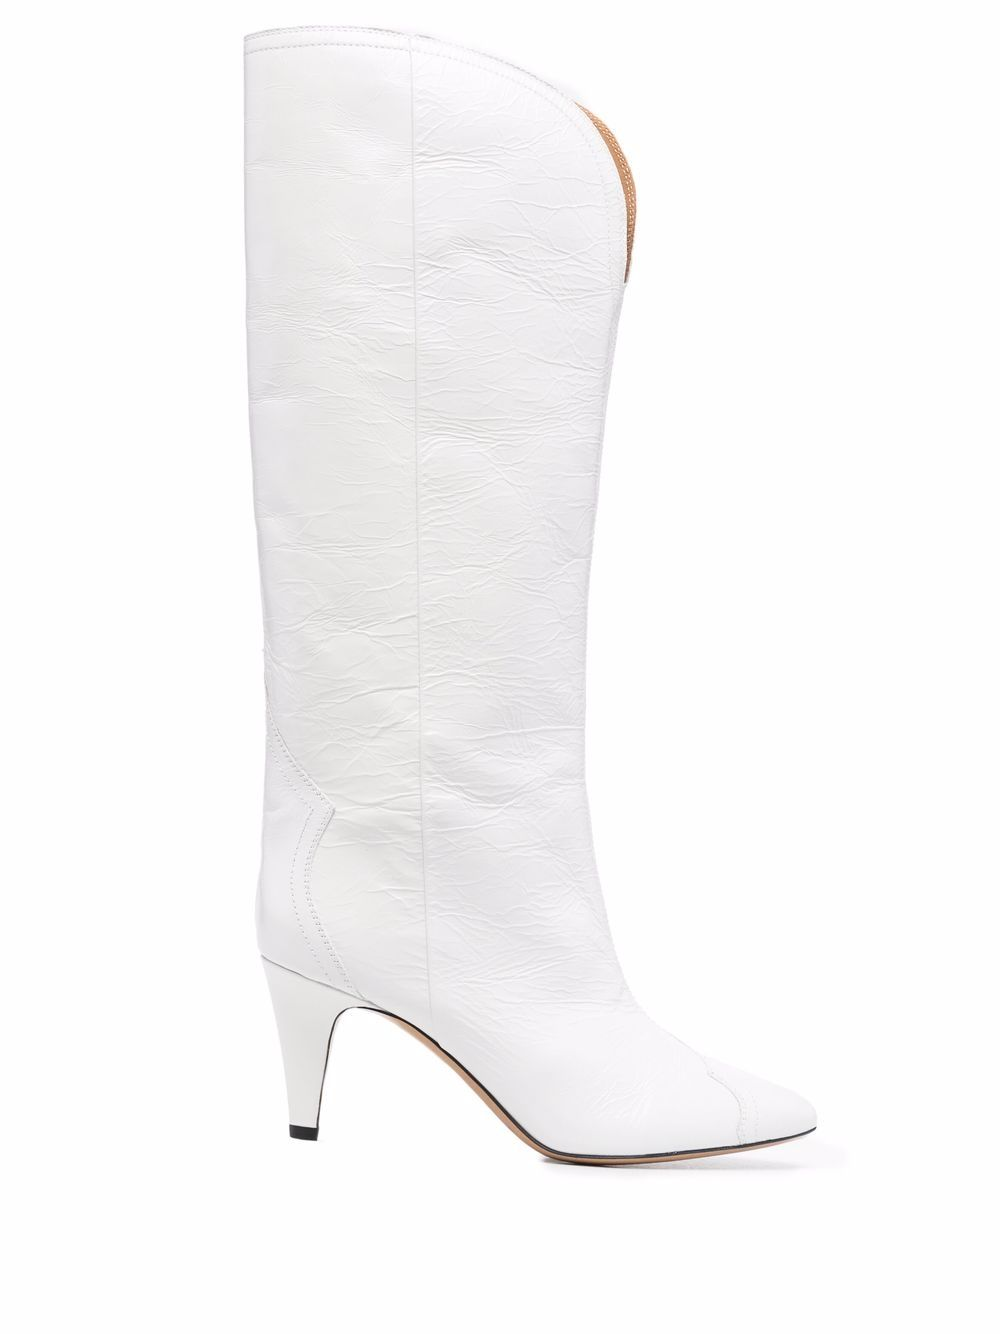 <p class='small-title'>ISABEL MARANT</p>Boots Hight leather White